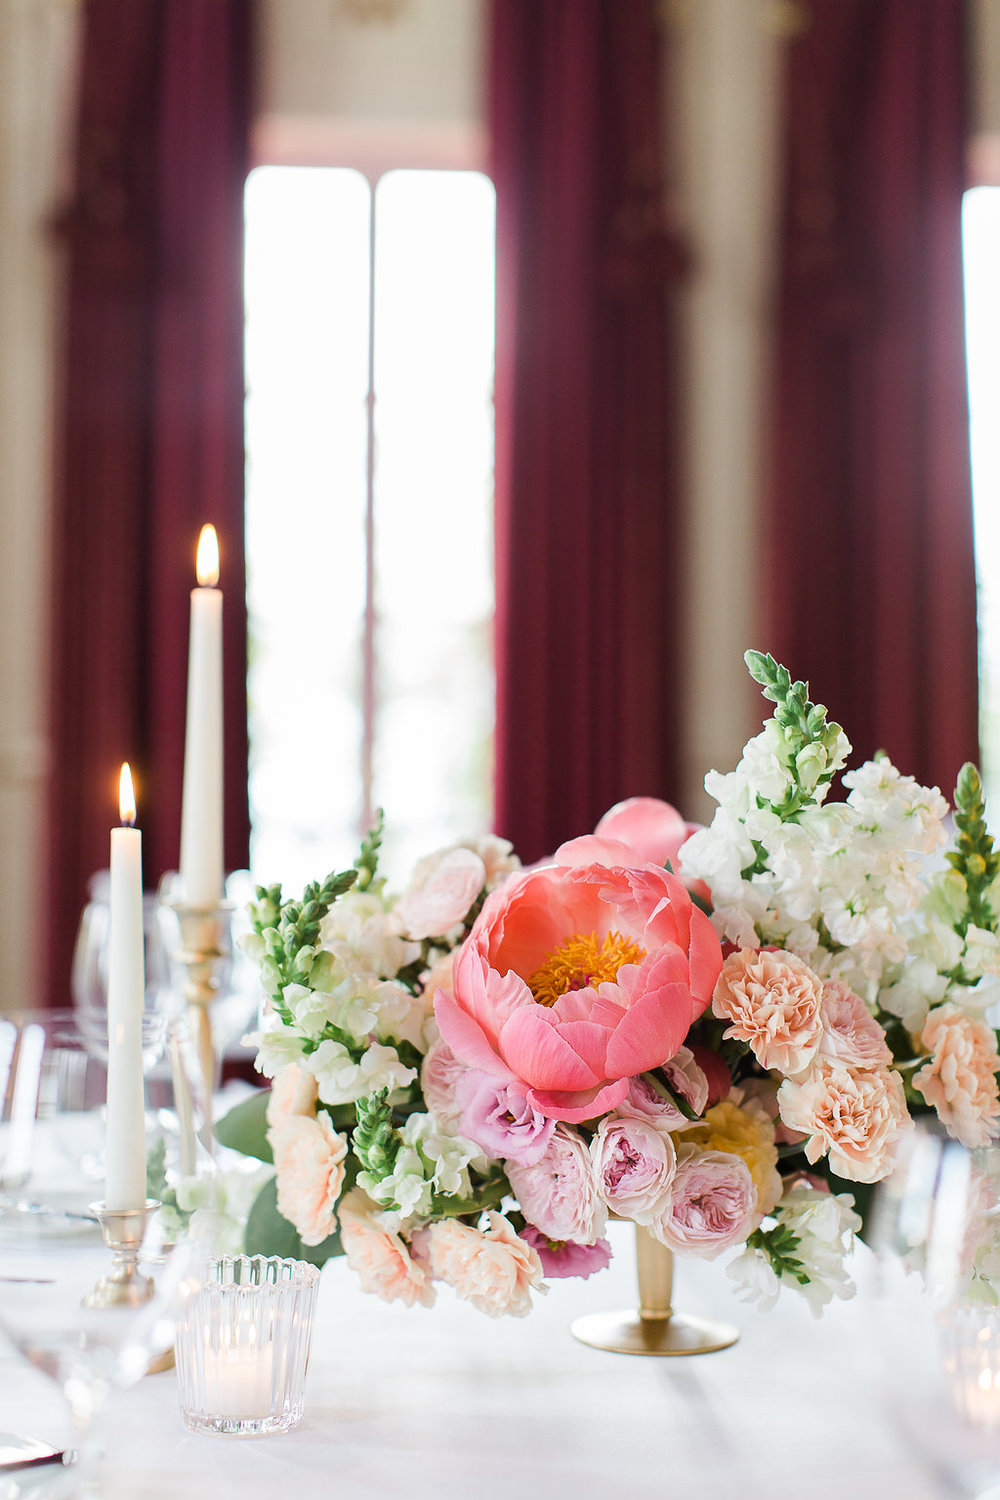 Luxe Navy and Pink Wedding at Schloss Fuschl in Austria by Tanja Kibogo23.JPG